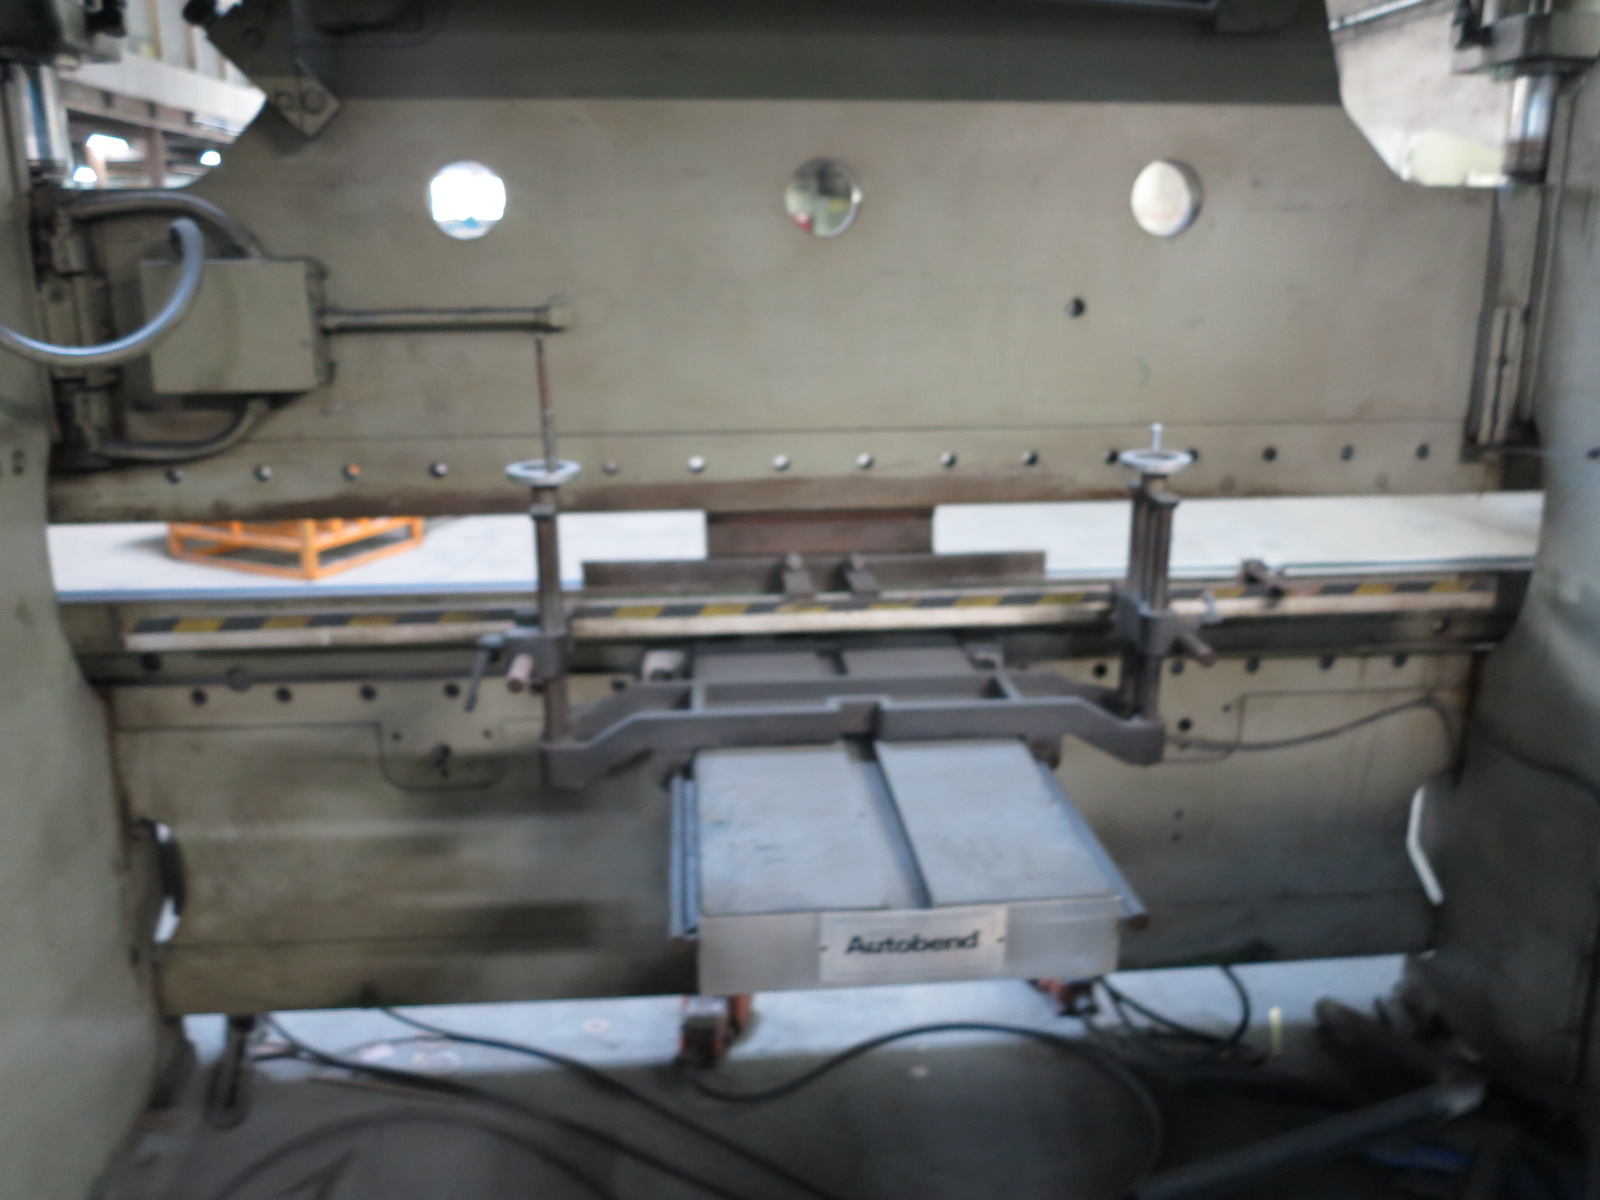 "CINCINNATI PRESS BRAKE, 90-TON X 10', MODEL 90CBX8, 8"" STROKE, AUTOBEND IV CNC CONTROL, FOOT - Image 7 of 8"